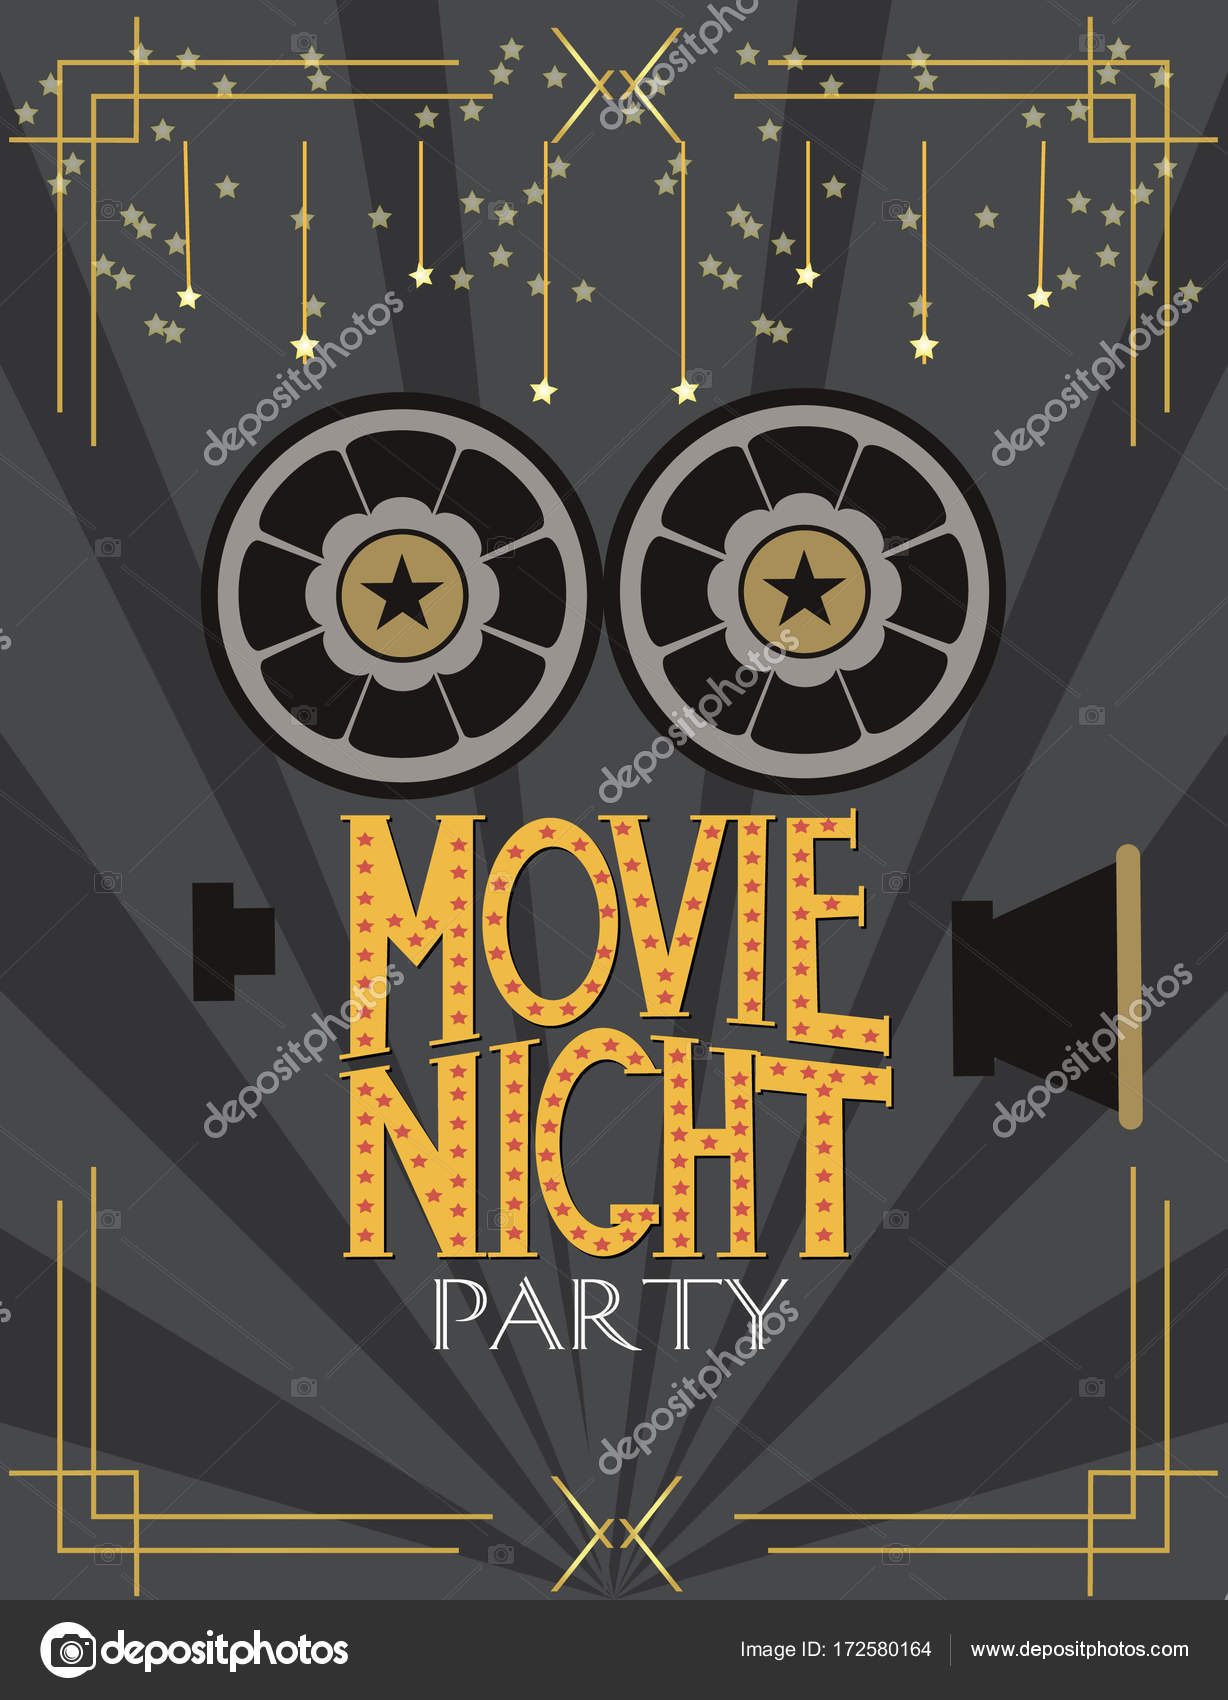 Night movie party invitation card stock vector miobuono12 172580164 night movie party invitation card stock vector stopboris Image collections